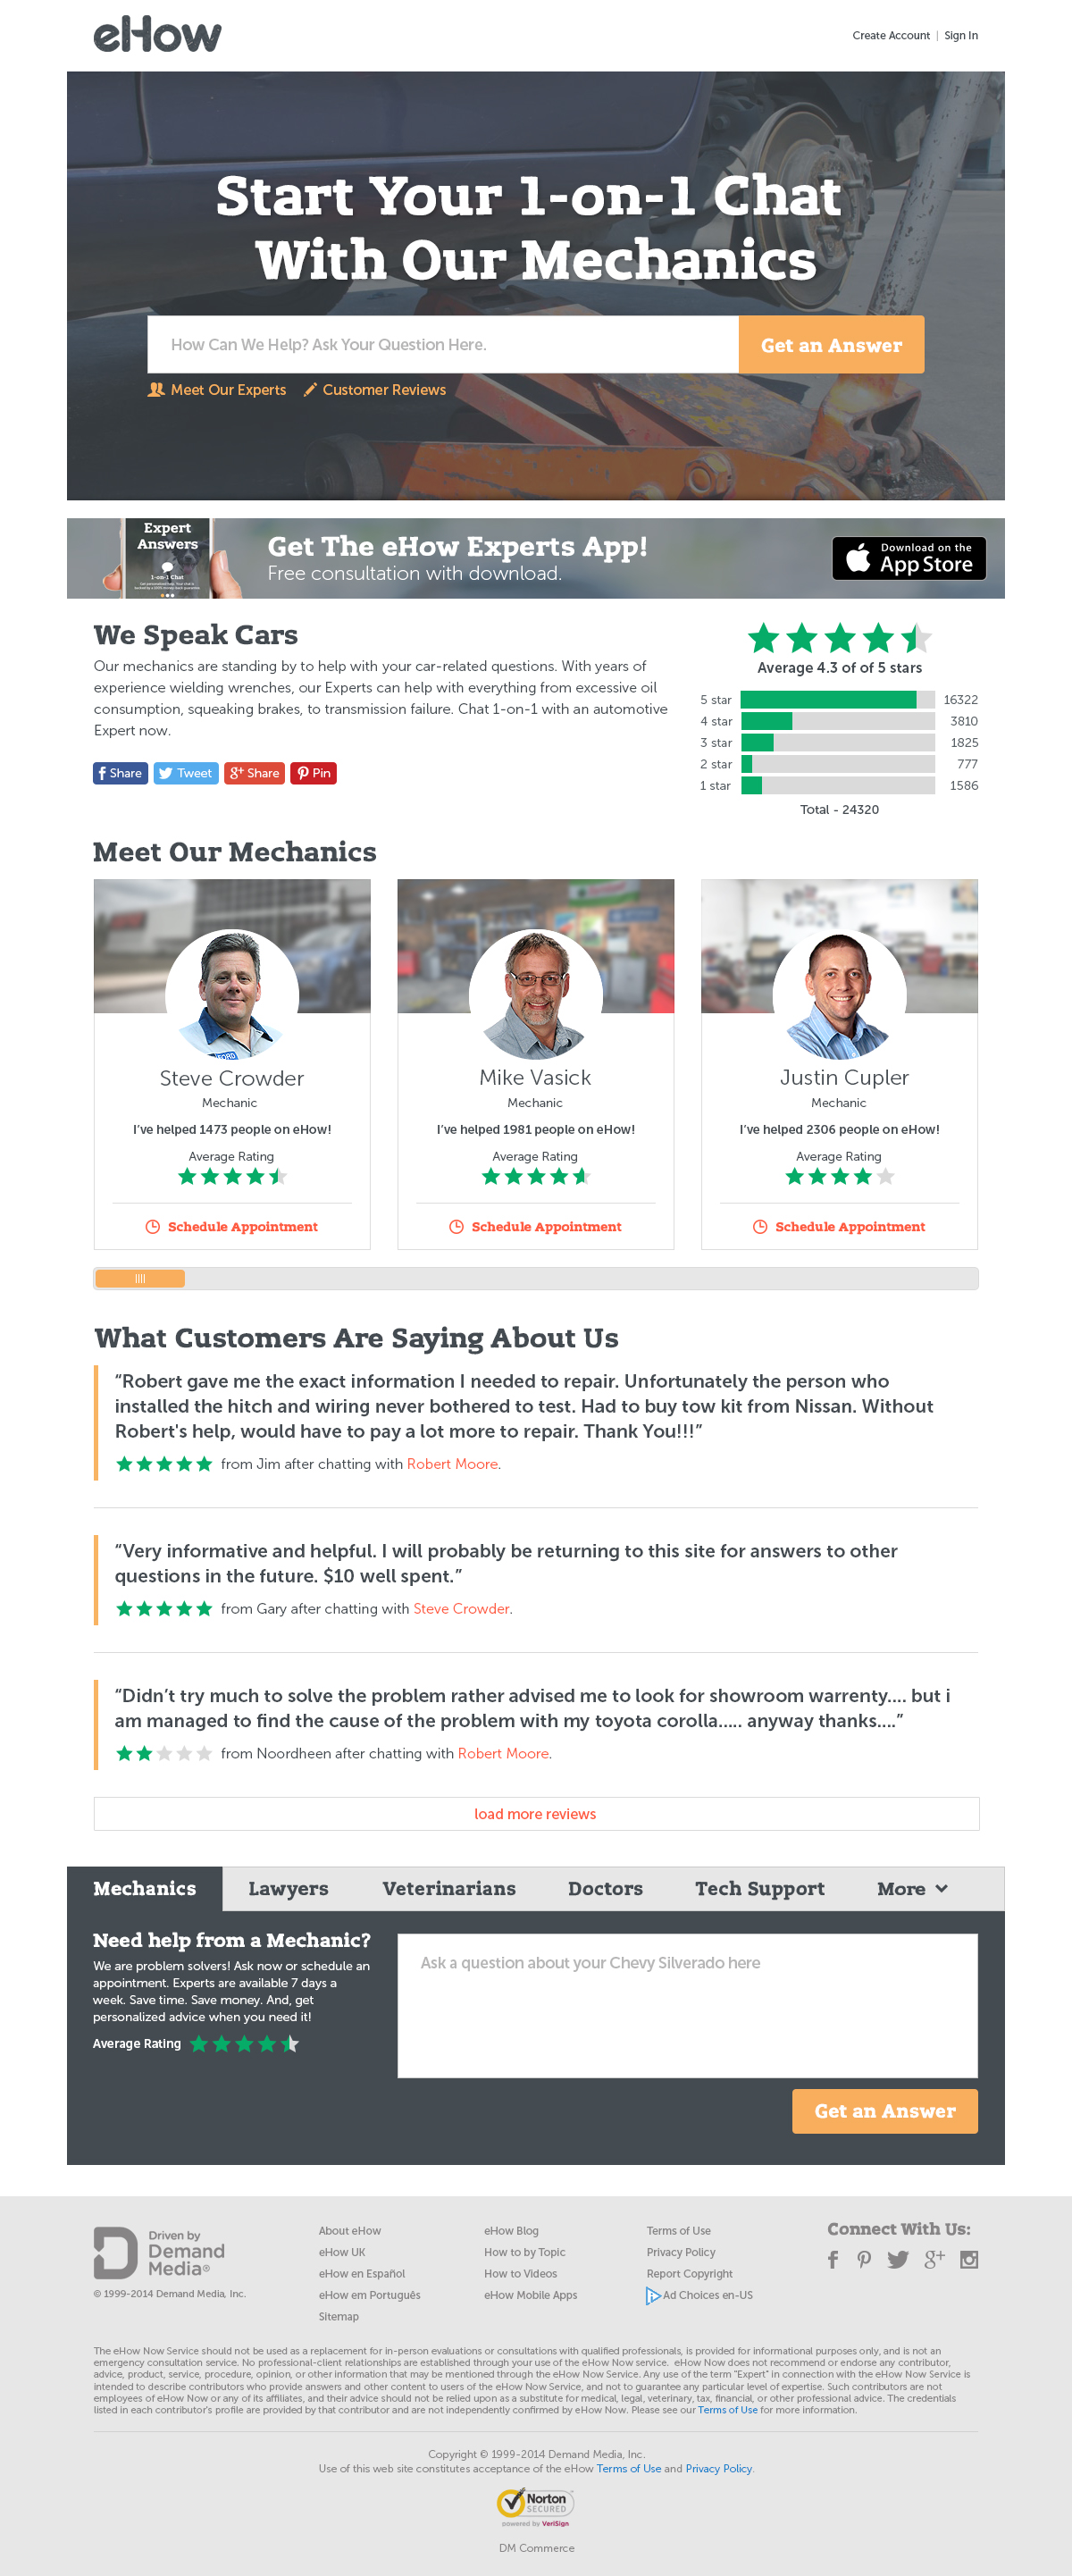 eHow Experts - Category Landing Page